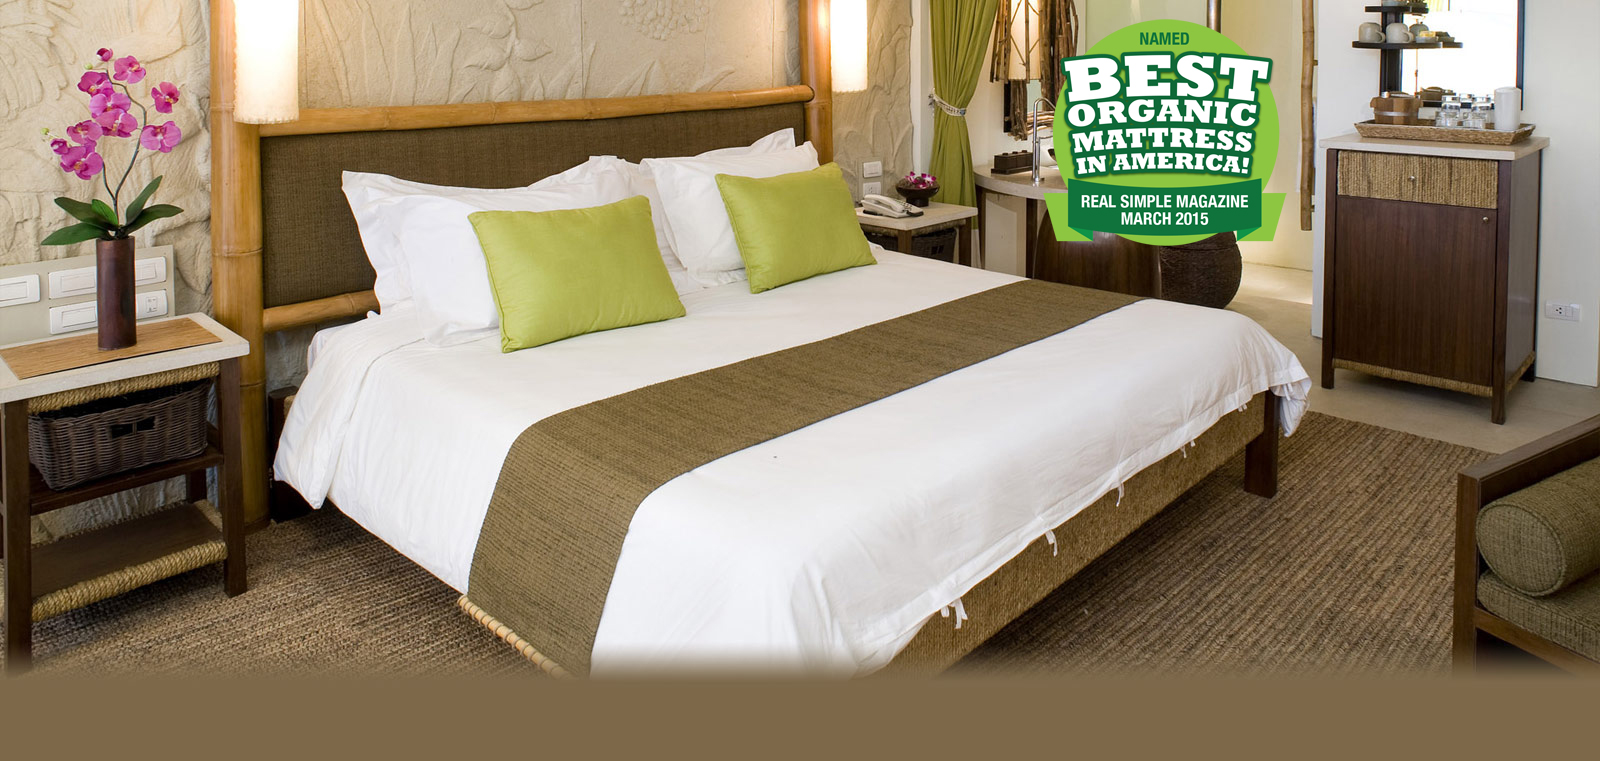 Best Organic Mattress in America